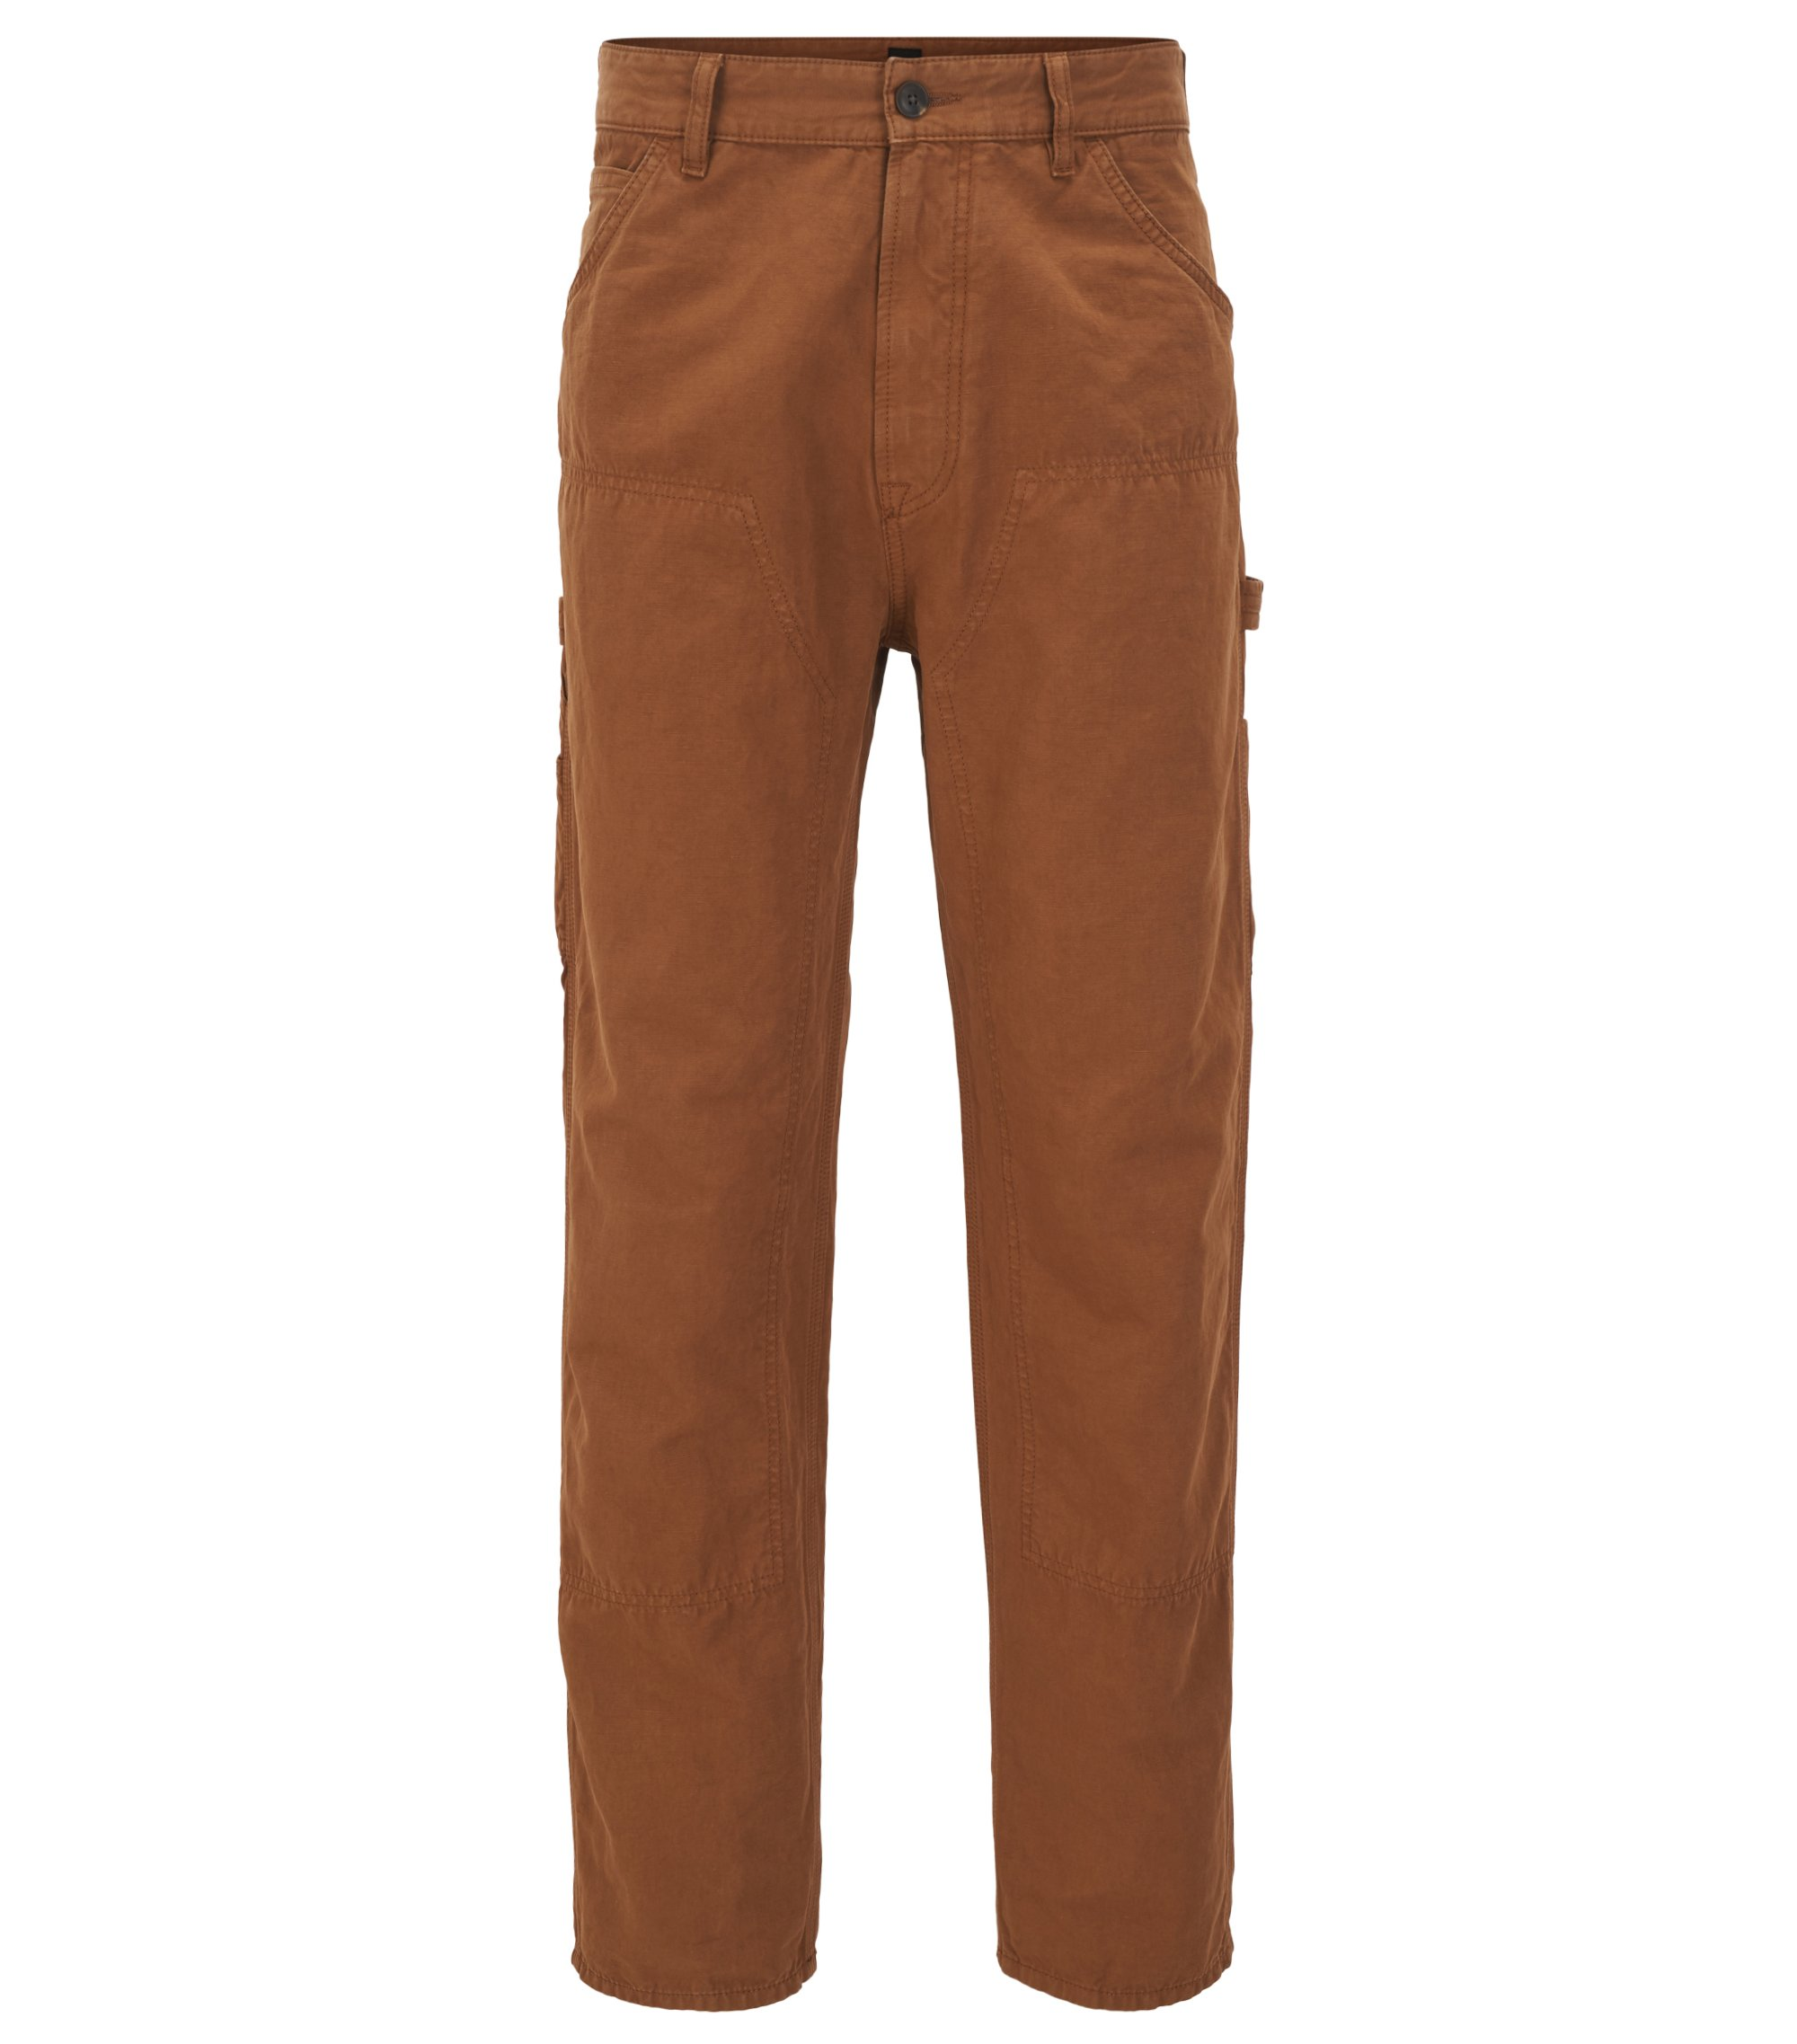 Pantalon Tapered Fit en coton flammé mélangé, Marron